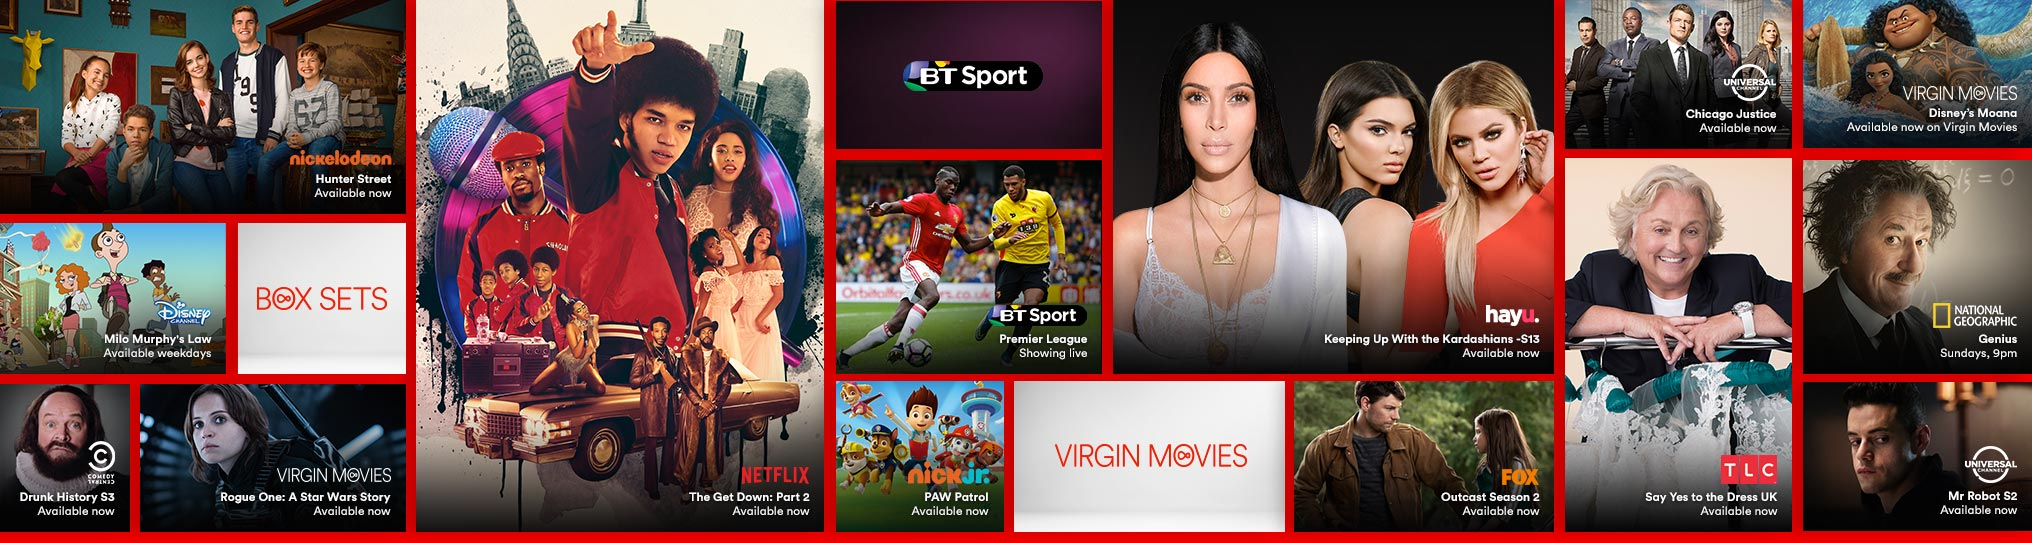 Gallery showing the live TV, catch up and on demand shows available with Big Kahuna